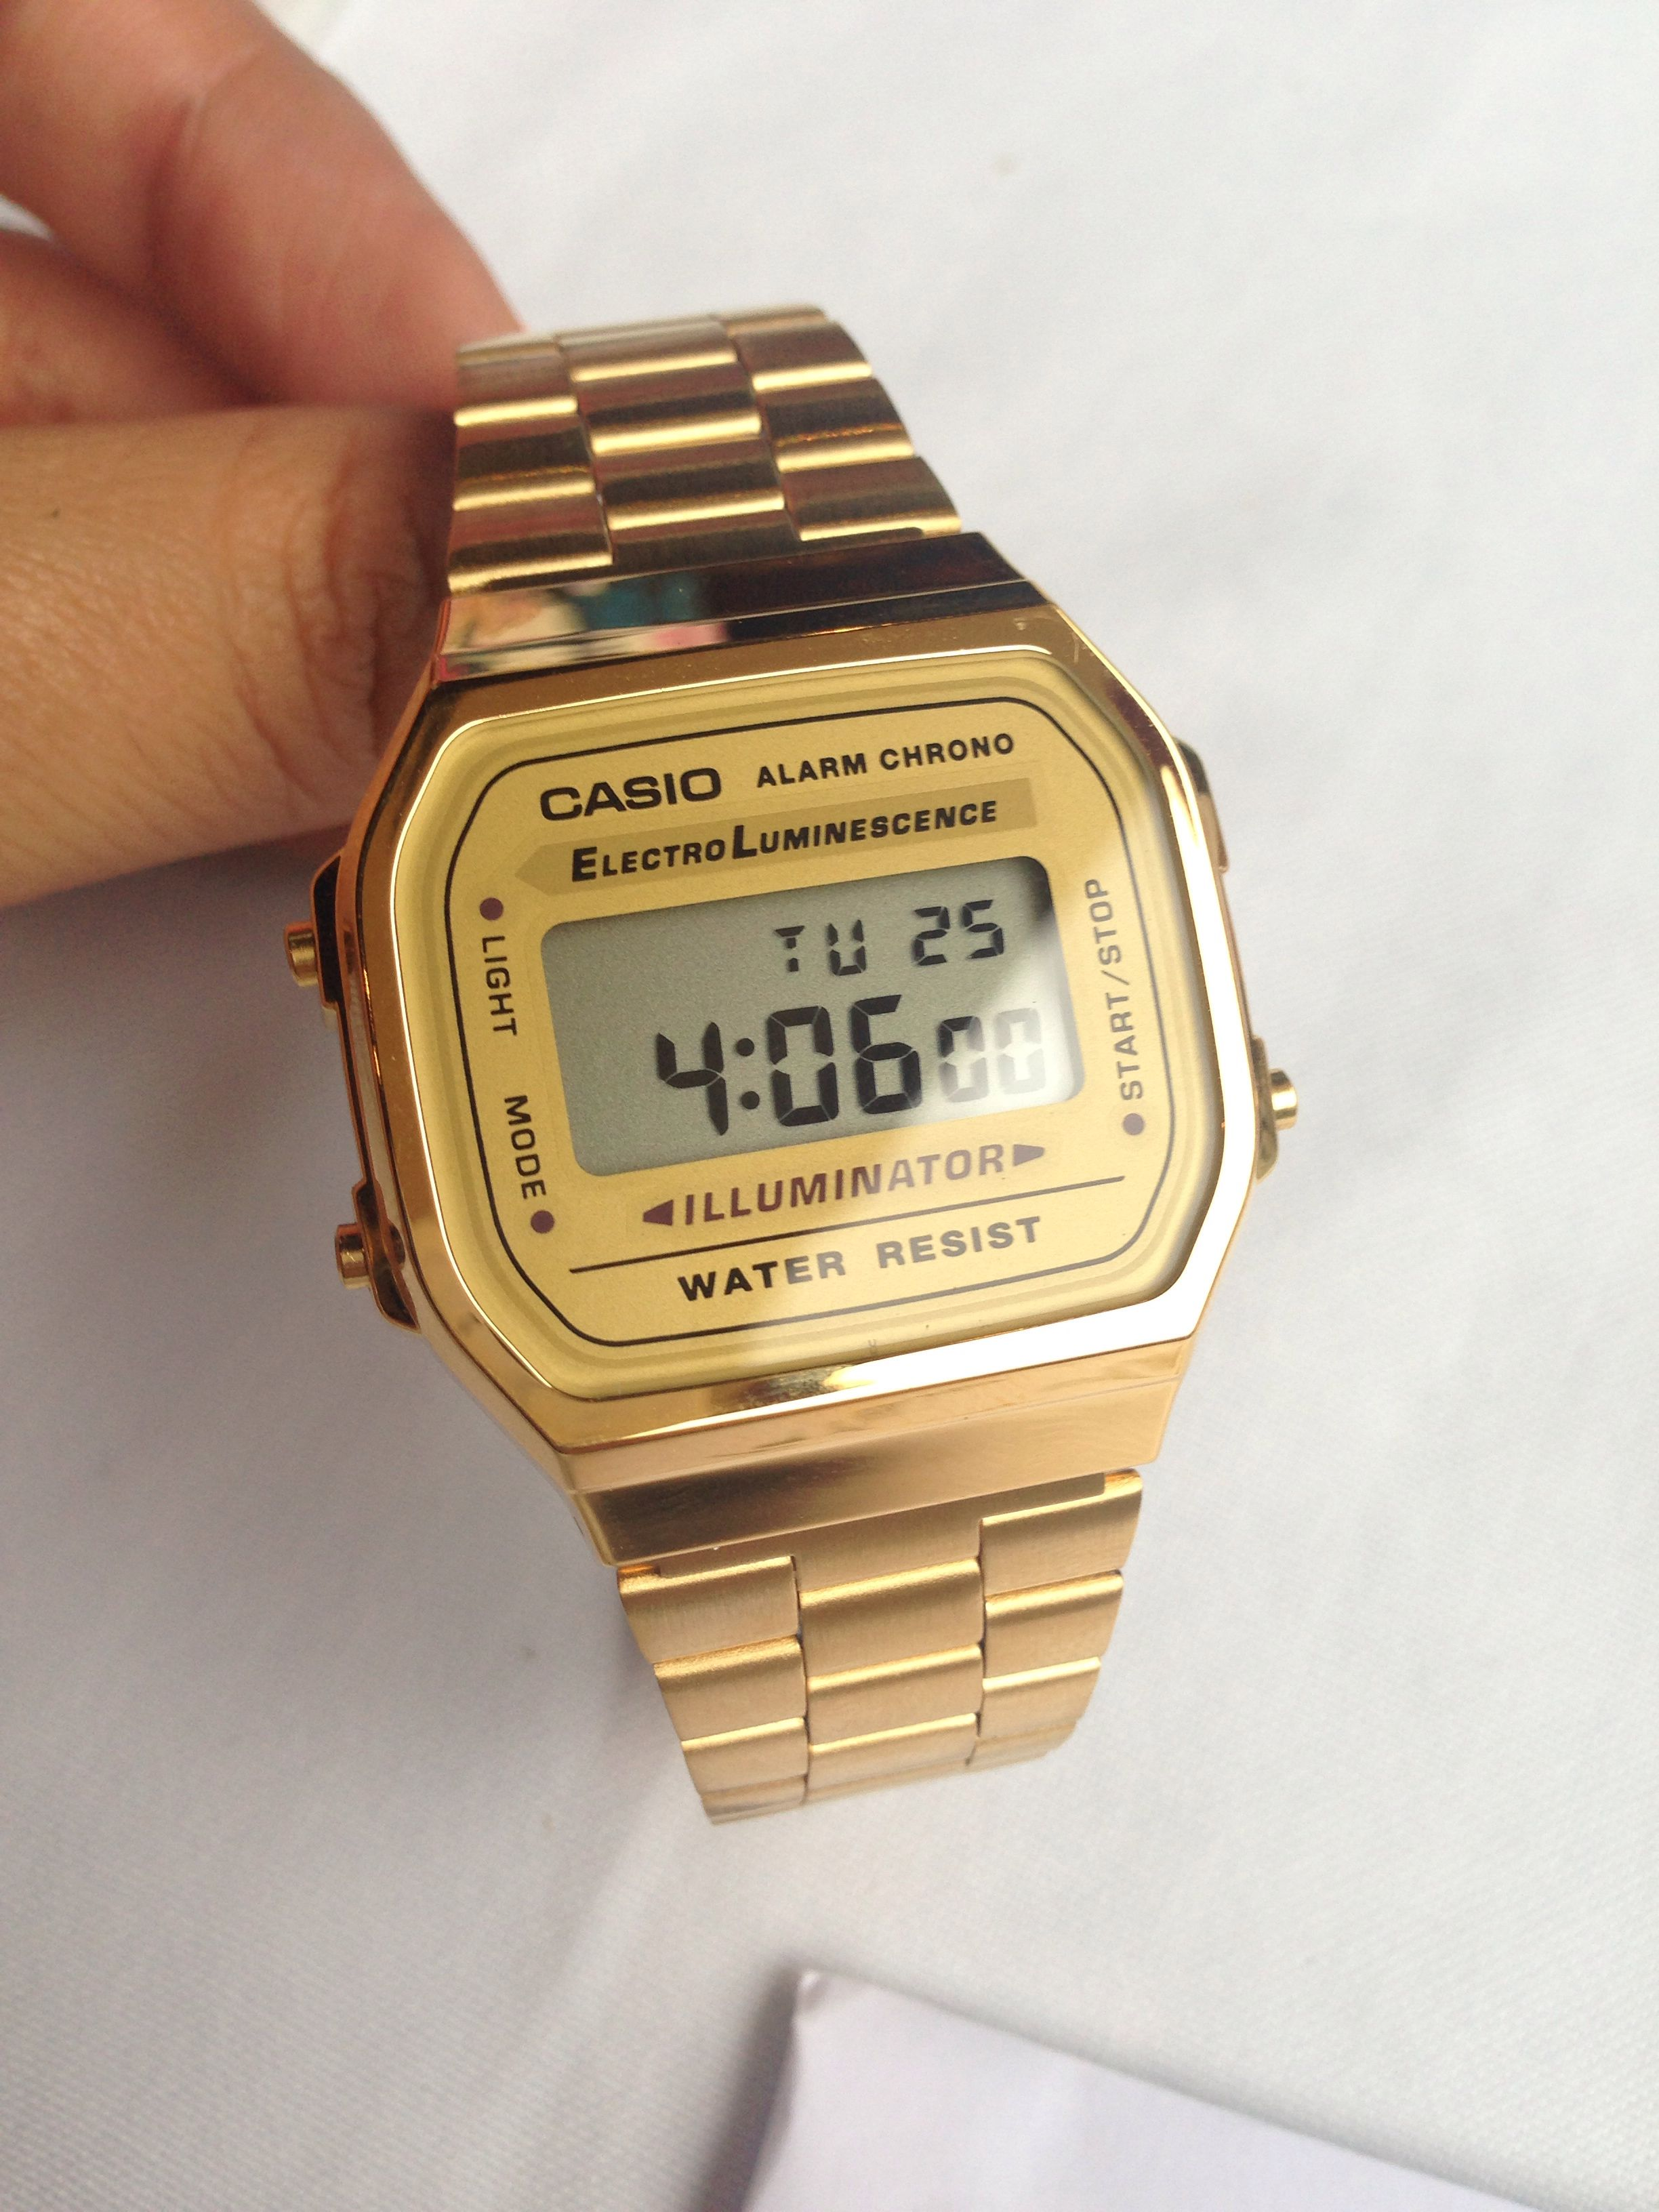 a8a71a0de01 Casio watch gold http   neonwatch.tumblr.com post 101744918811